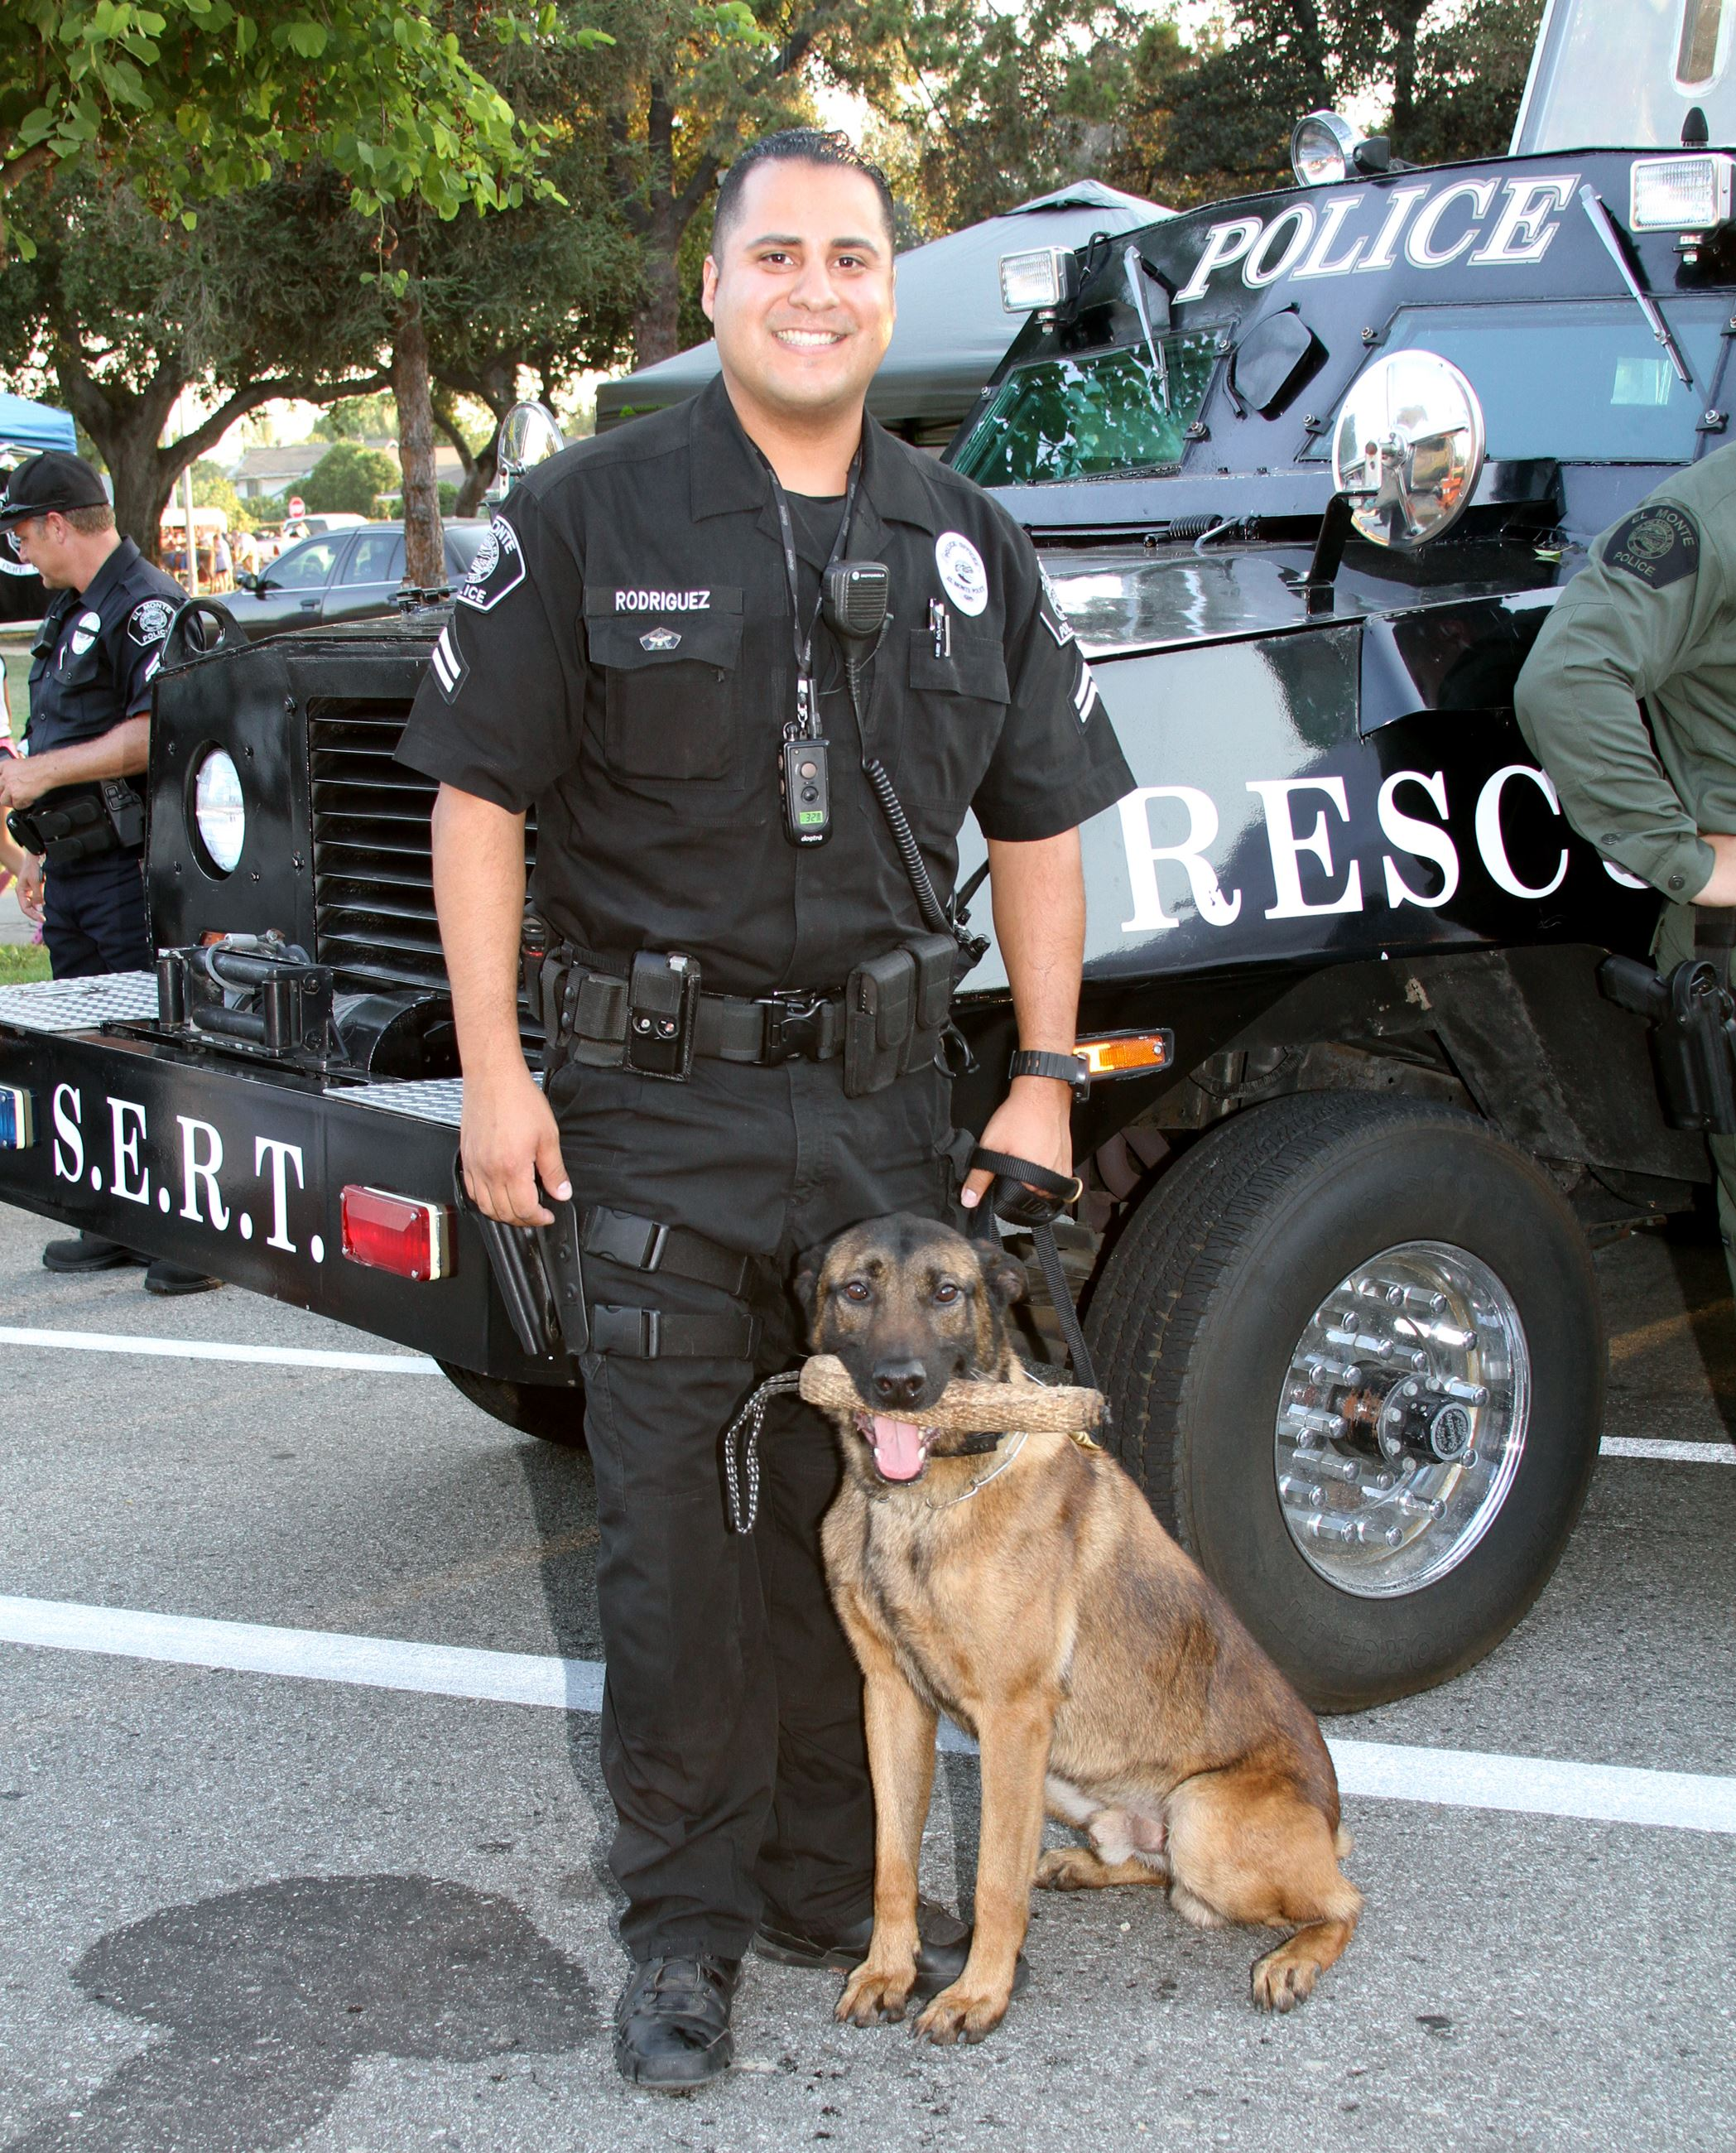 Officer Stands with Dog Officer from Canine Unit